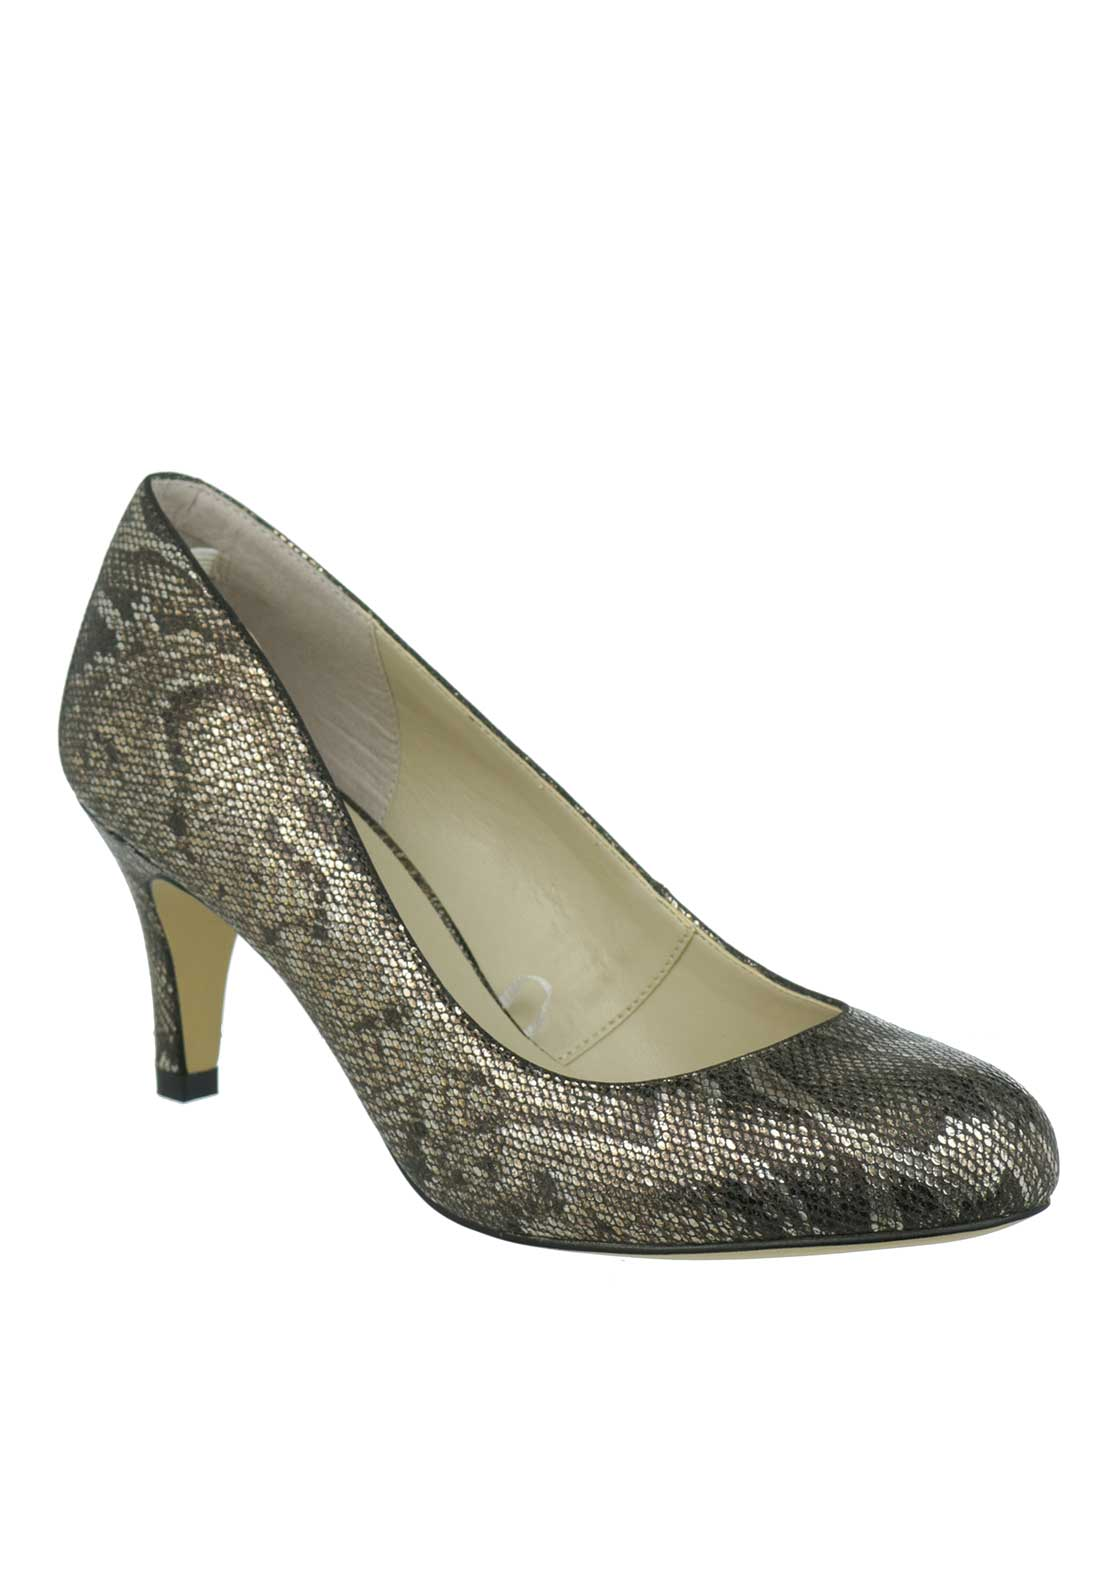 Lotus Colombina Metallic Snakeskin Round Toe Mid Heel Shoe, Bronze